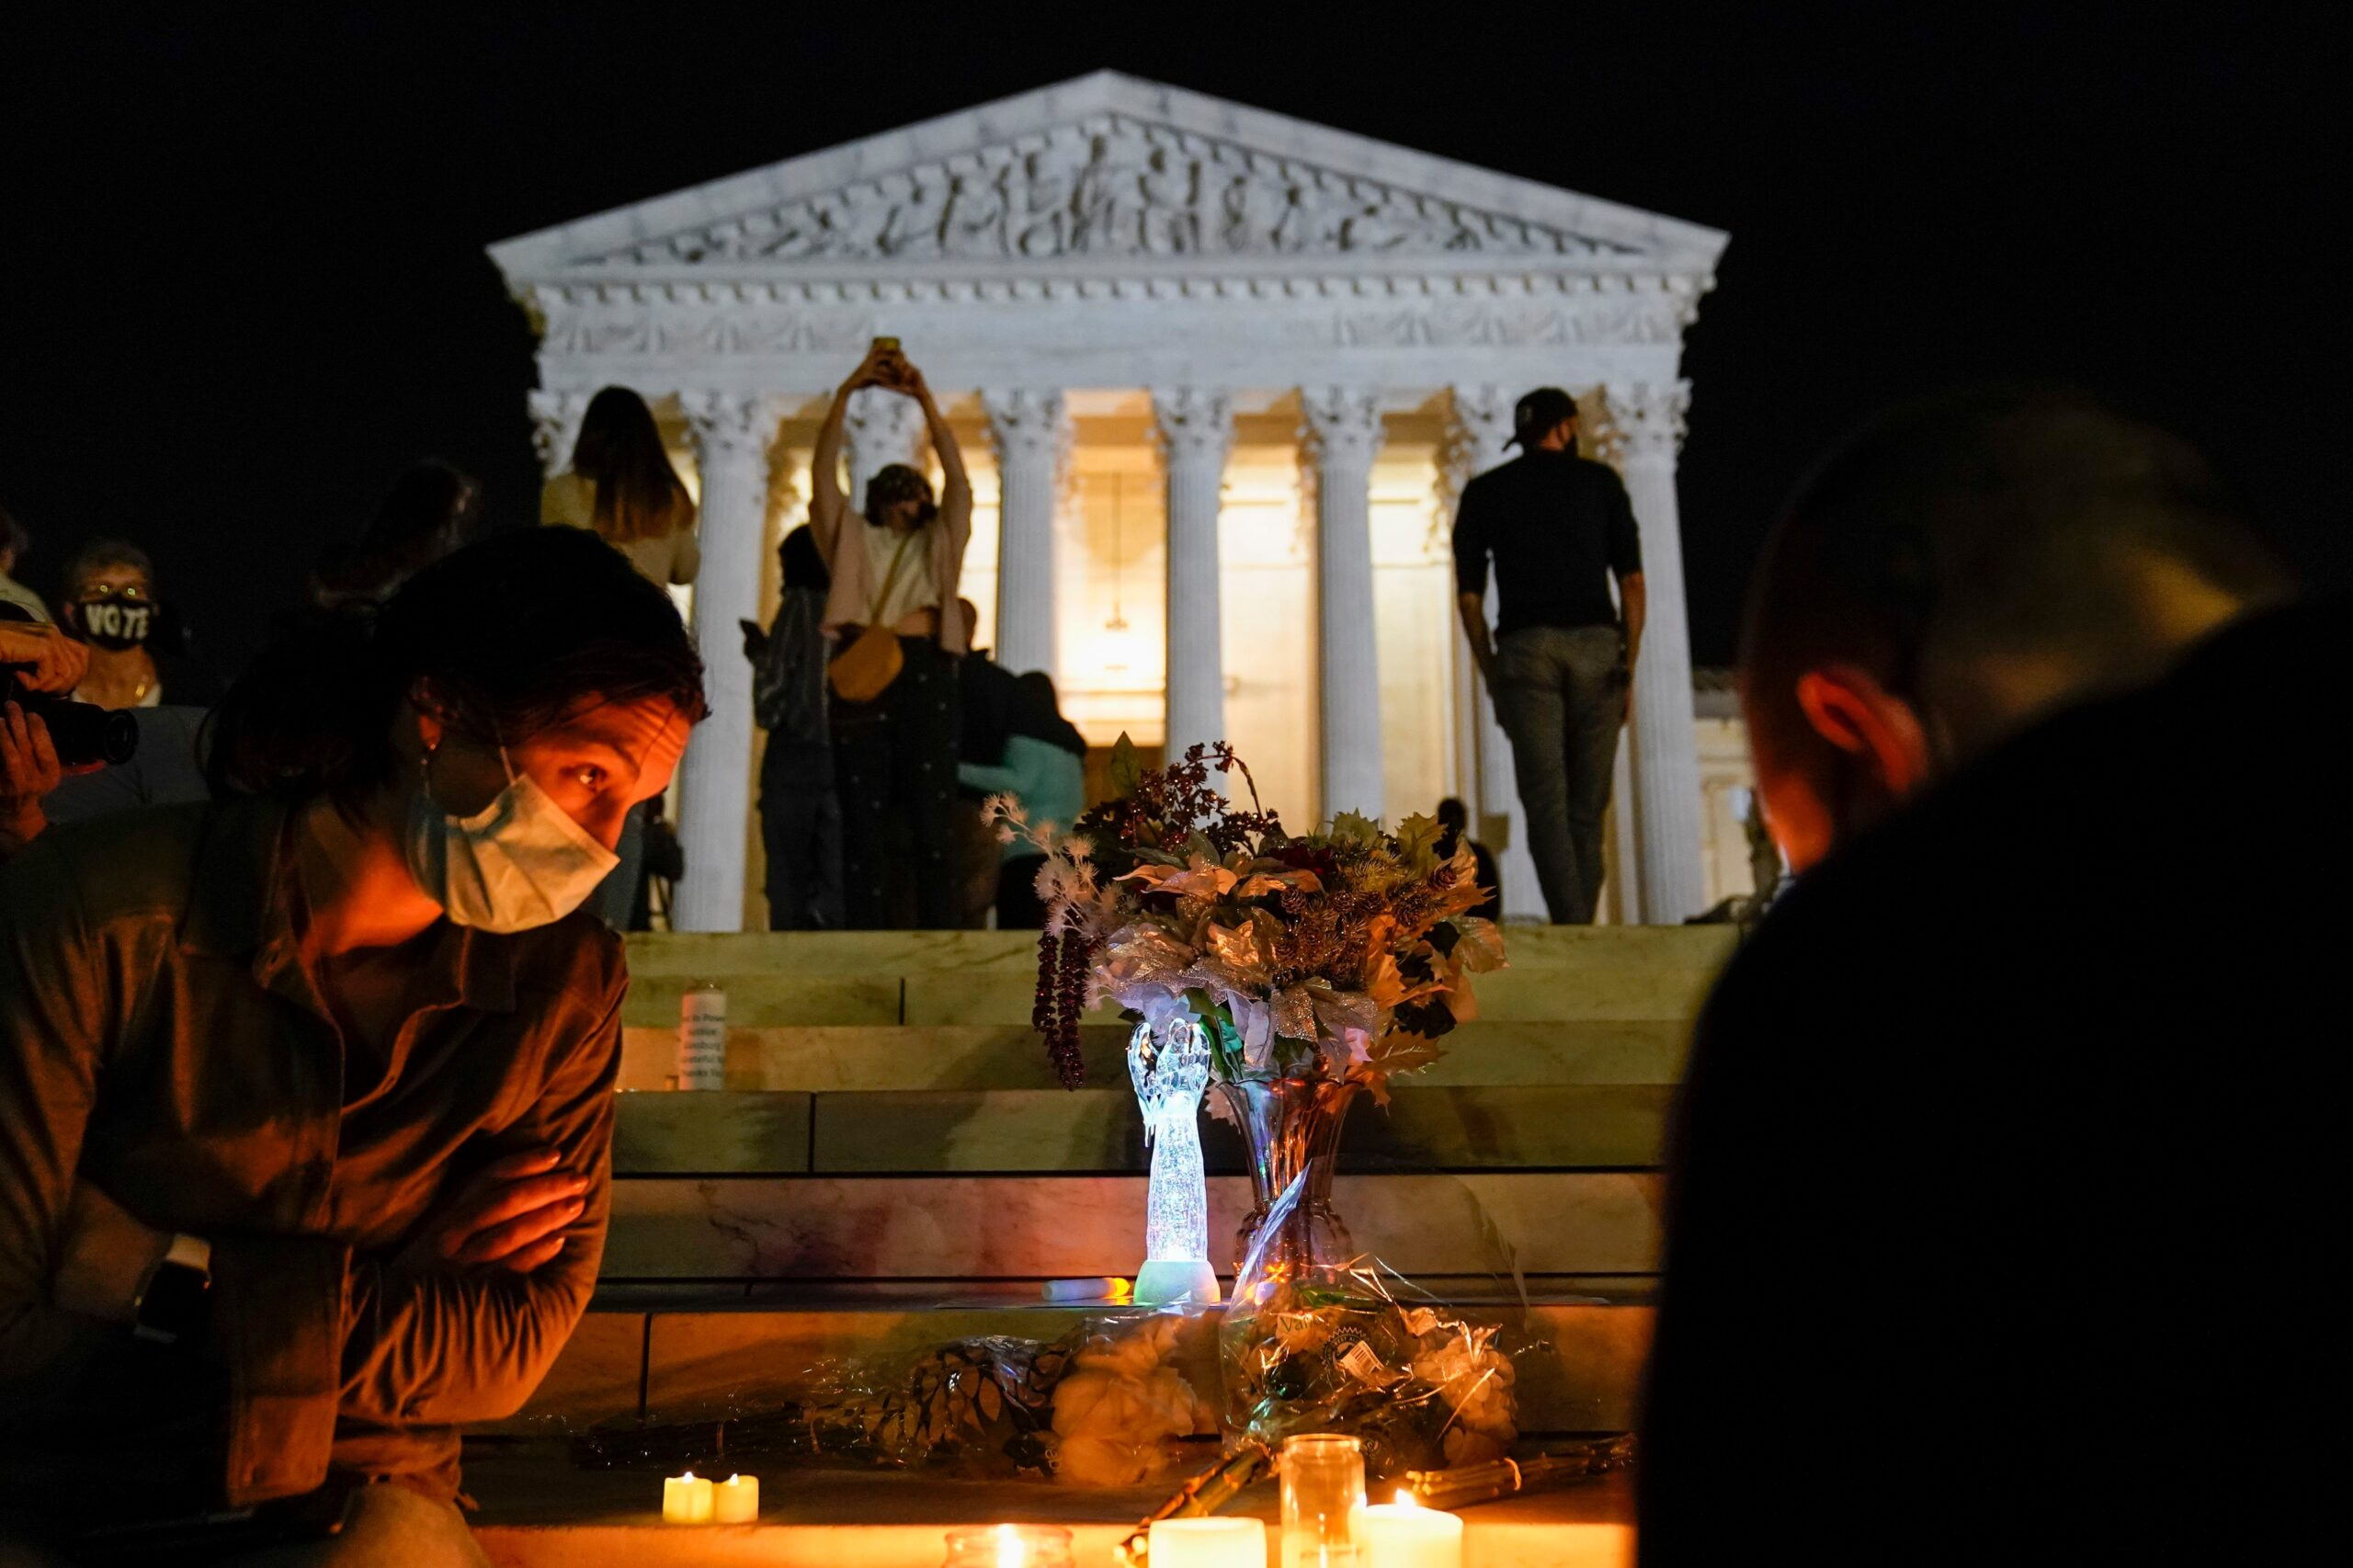 Crowd gathers at Supreme Court to honor Justice Ruth Bader Ginsburg